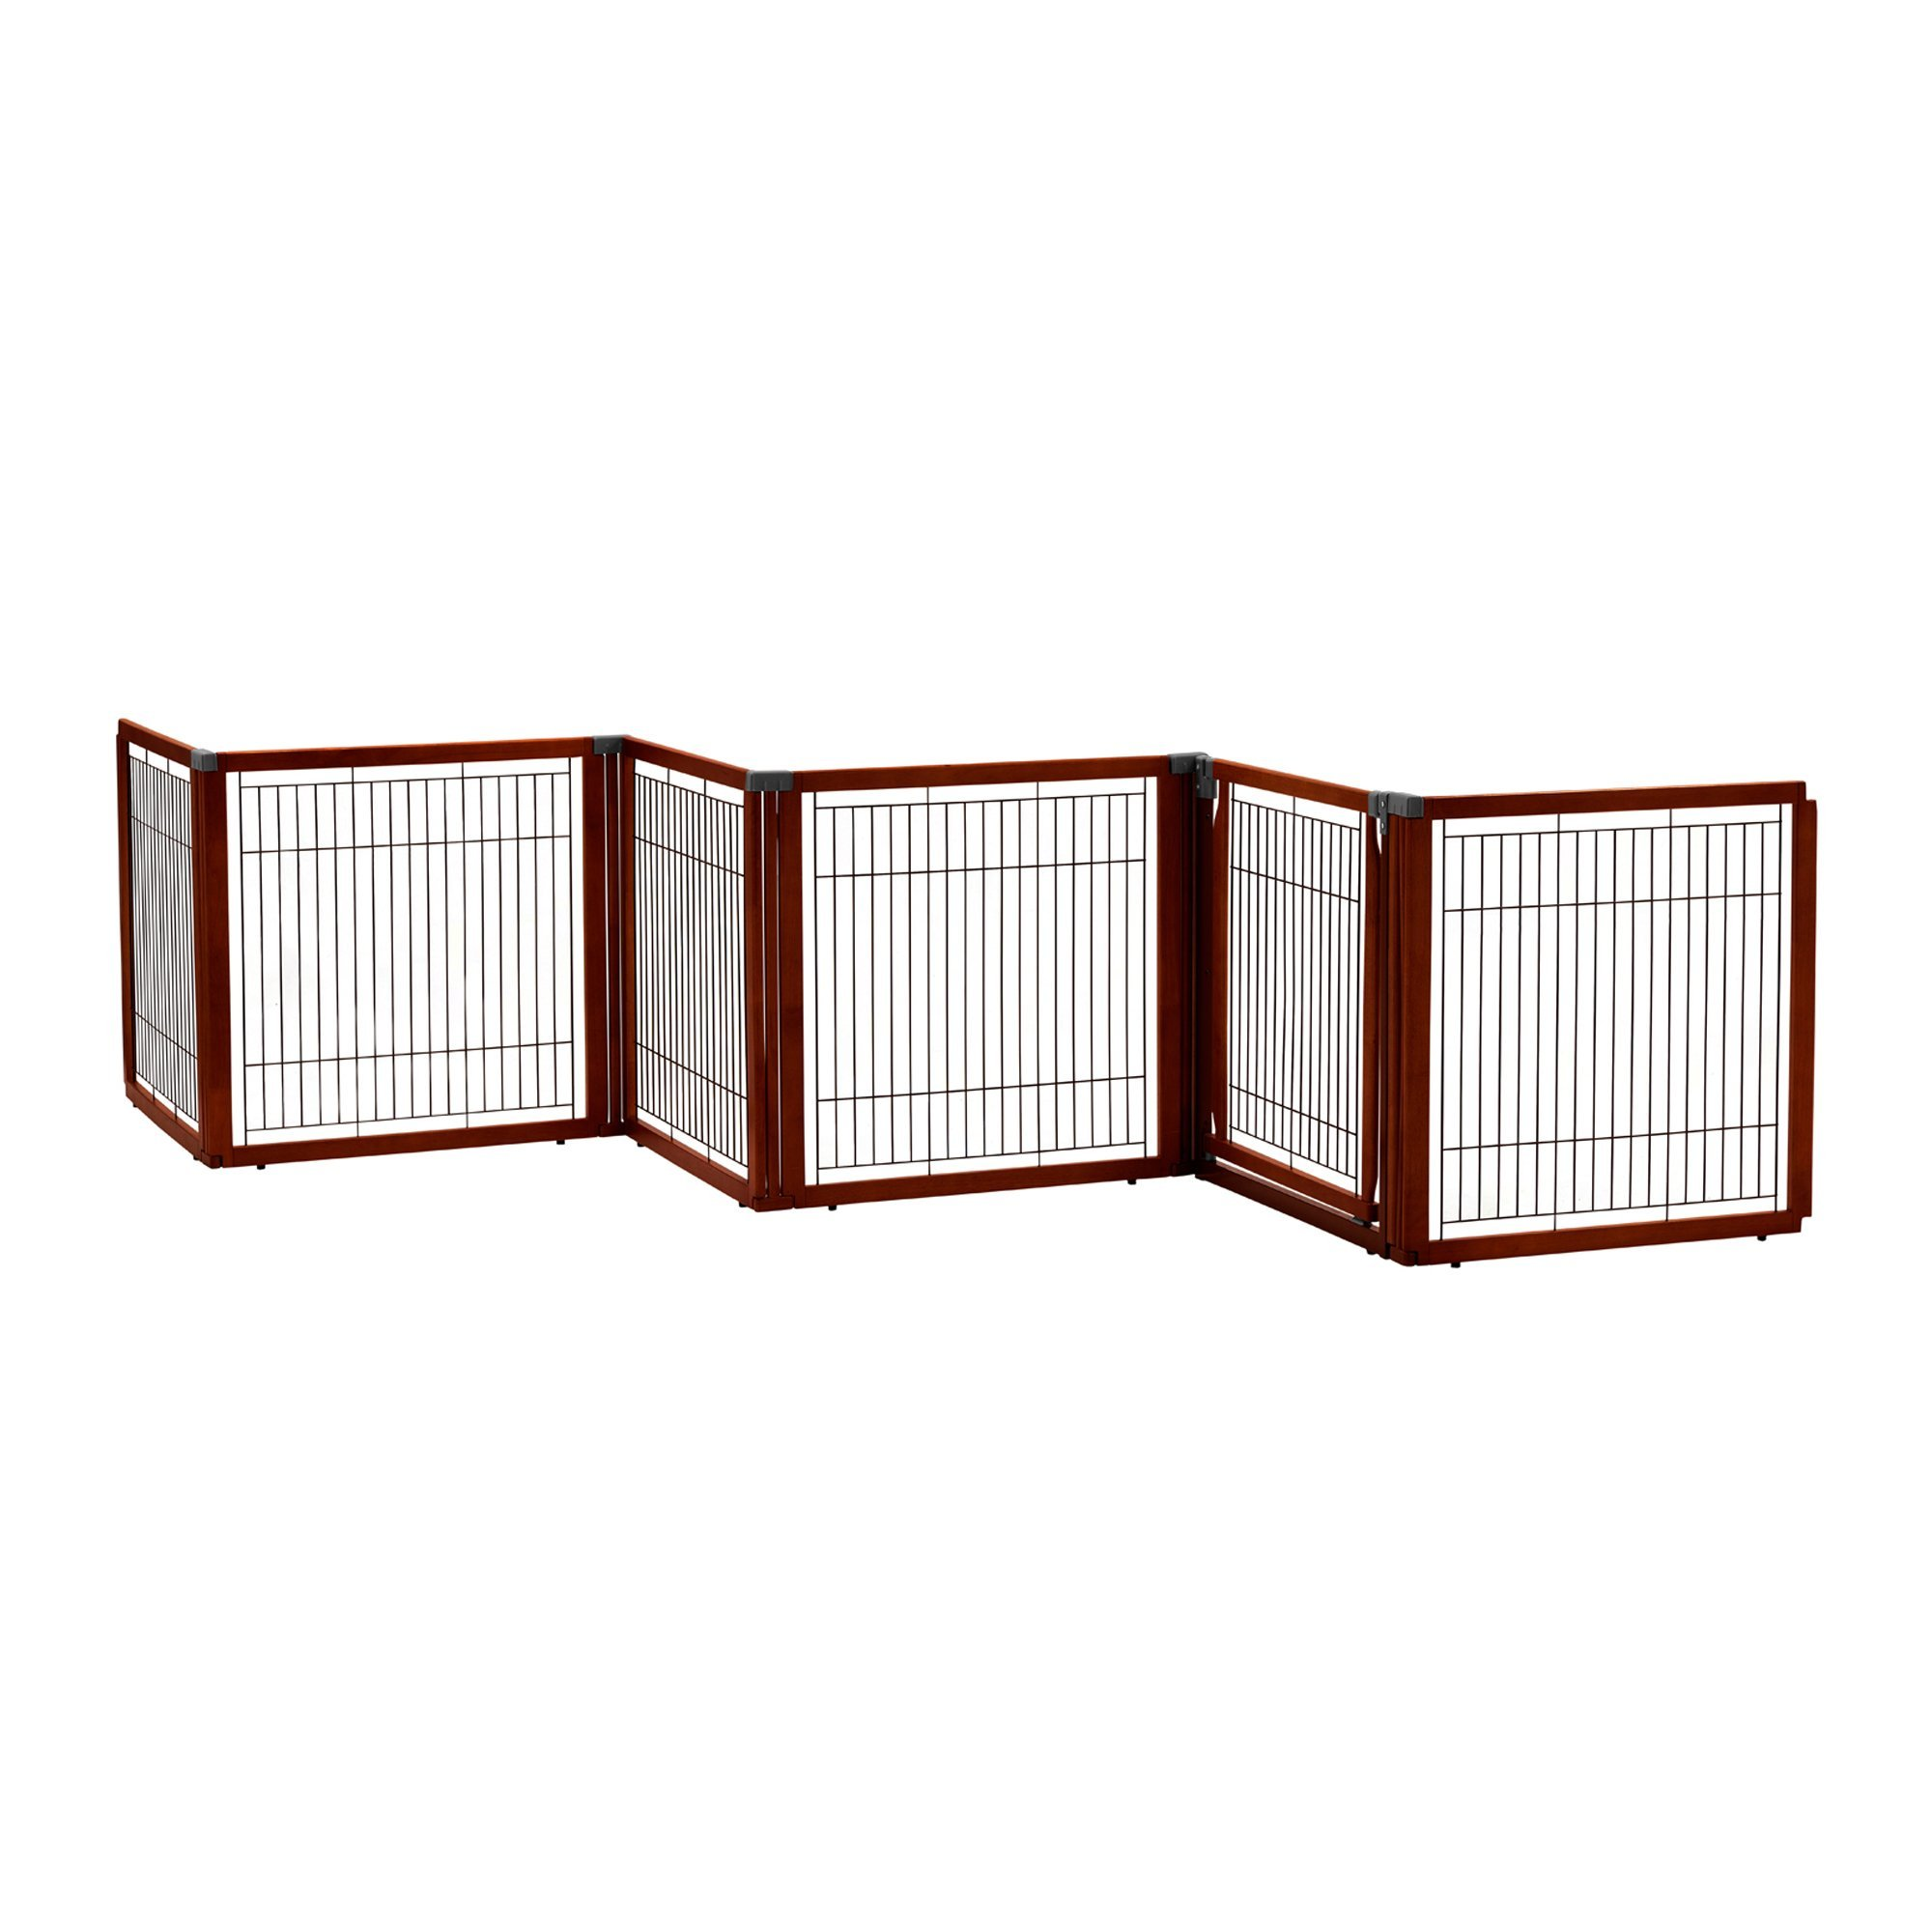 Richell 94960 Pet Kennels and Gates by Richell